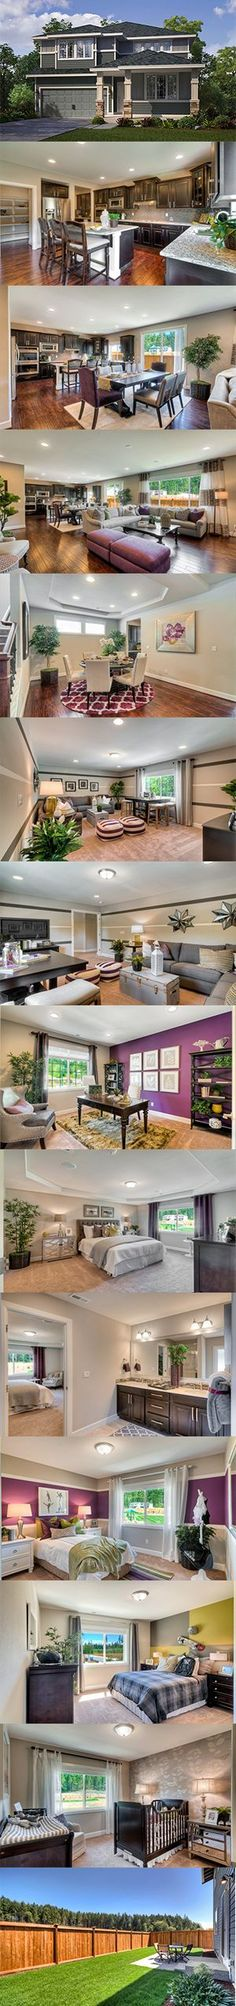 The fact that there's gray and purple in almost every room makes my heart smile😍Luxury features meet beautiful design in the Everson at Harbor Hill from With more than square feet of living space, this home has it all! Beautiful Houses Interior, Beautiful Homes, Space Architecture, New House Plans, My Dream Home, Dream Homes, Dream Mansion, House Goals, Model Homes